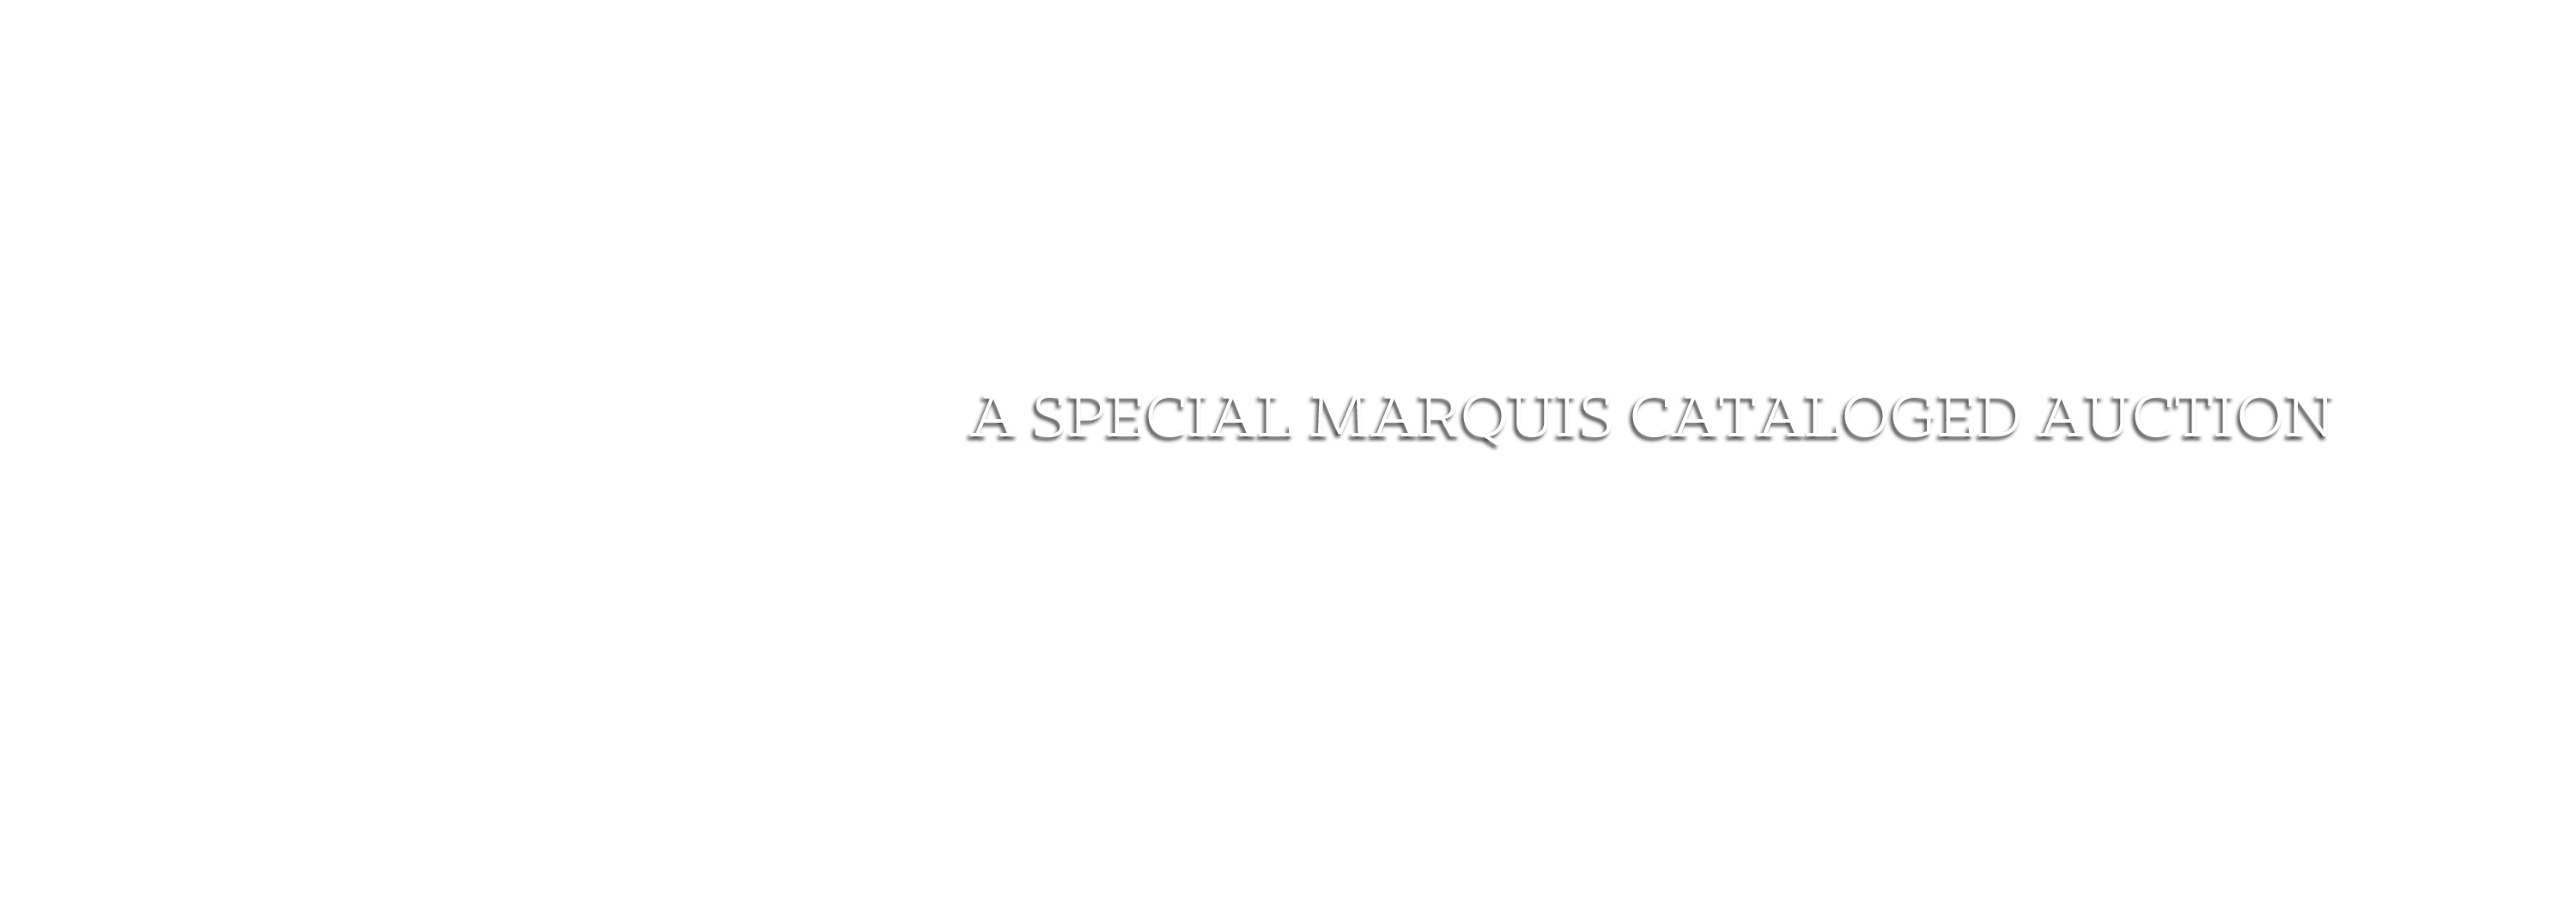 marquis-06-06-20-slider-2.png